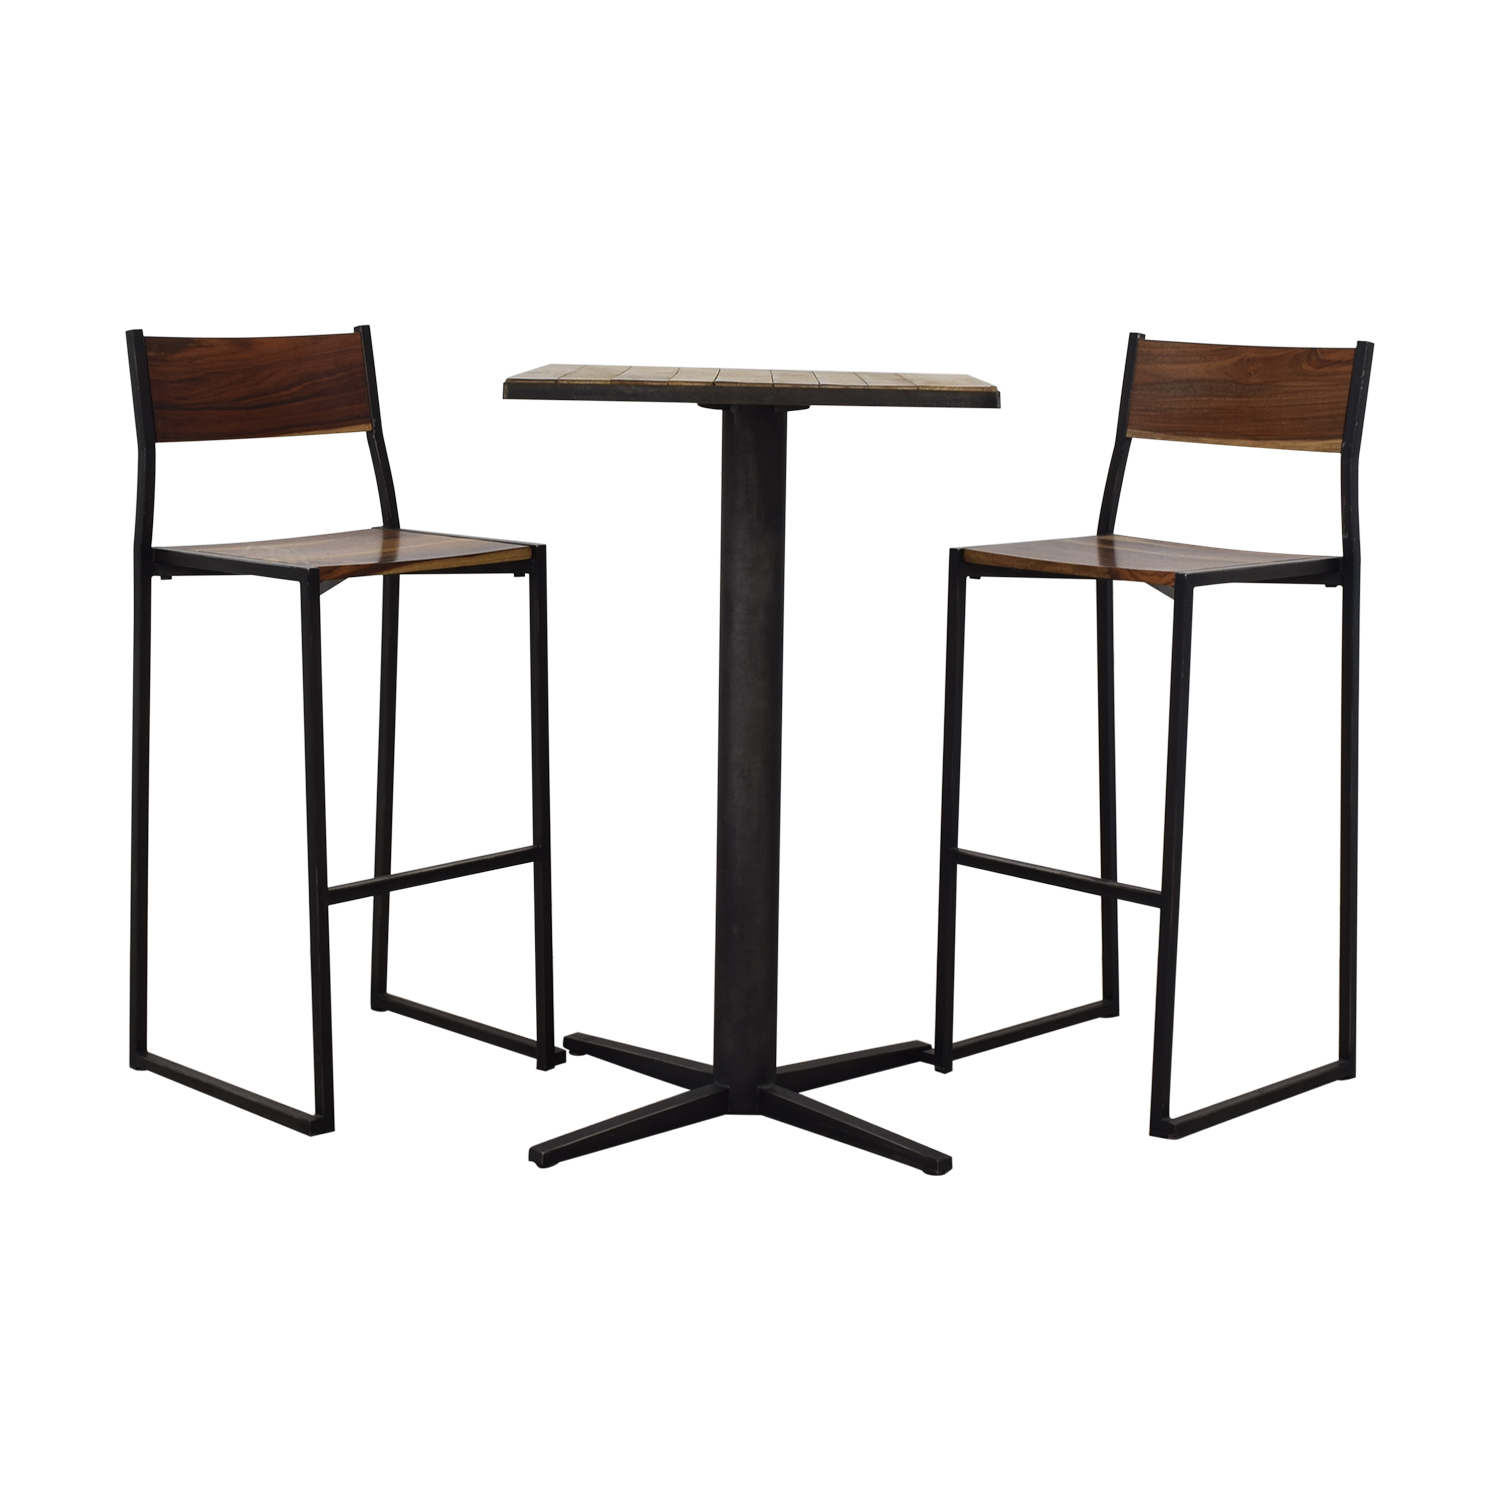 From the Source High Top Table and Bar Stools / Stools